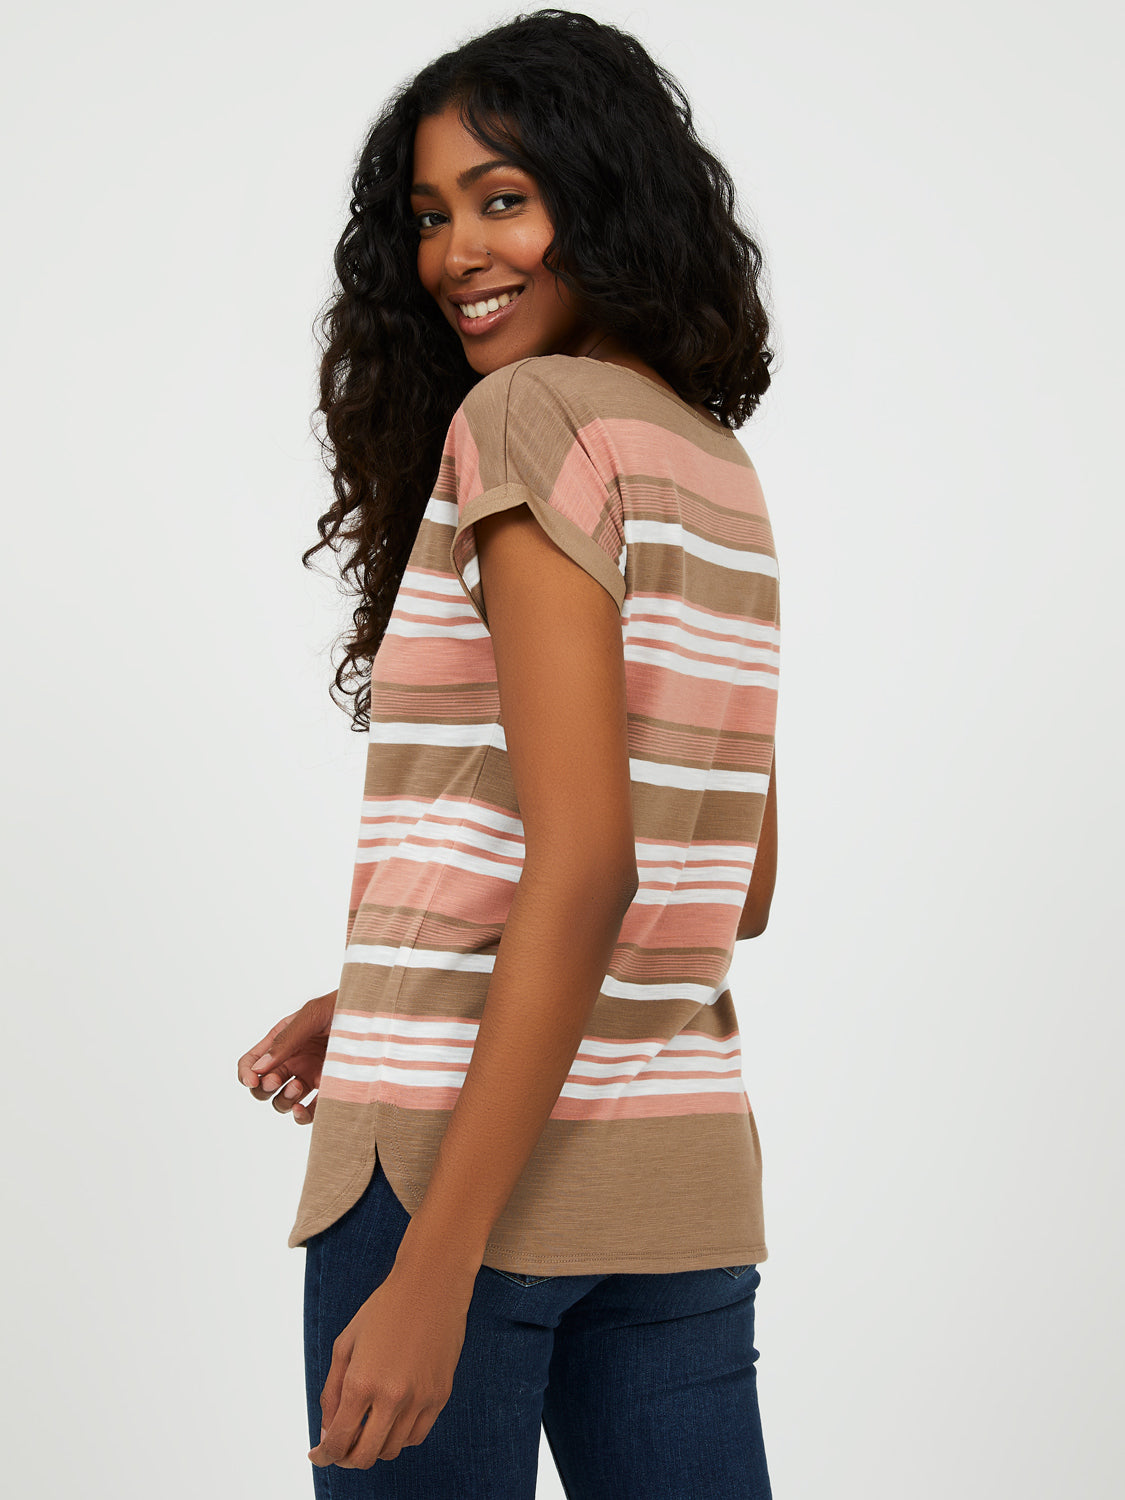 Variegated Striped Tee